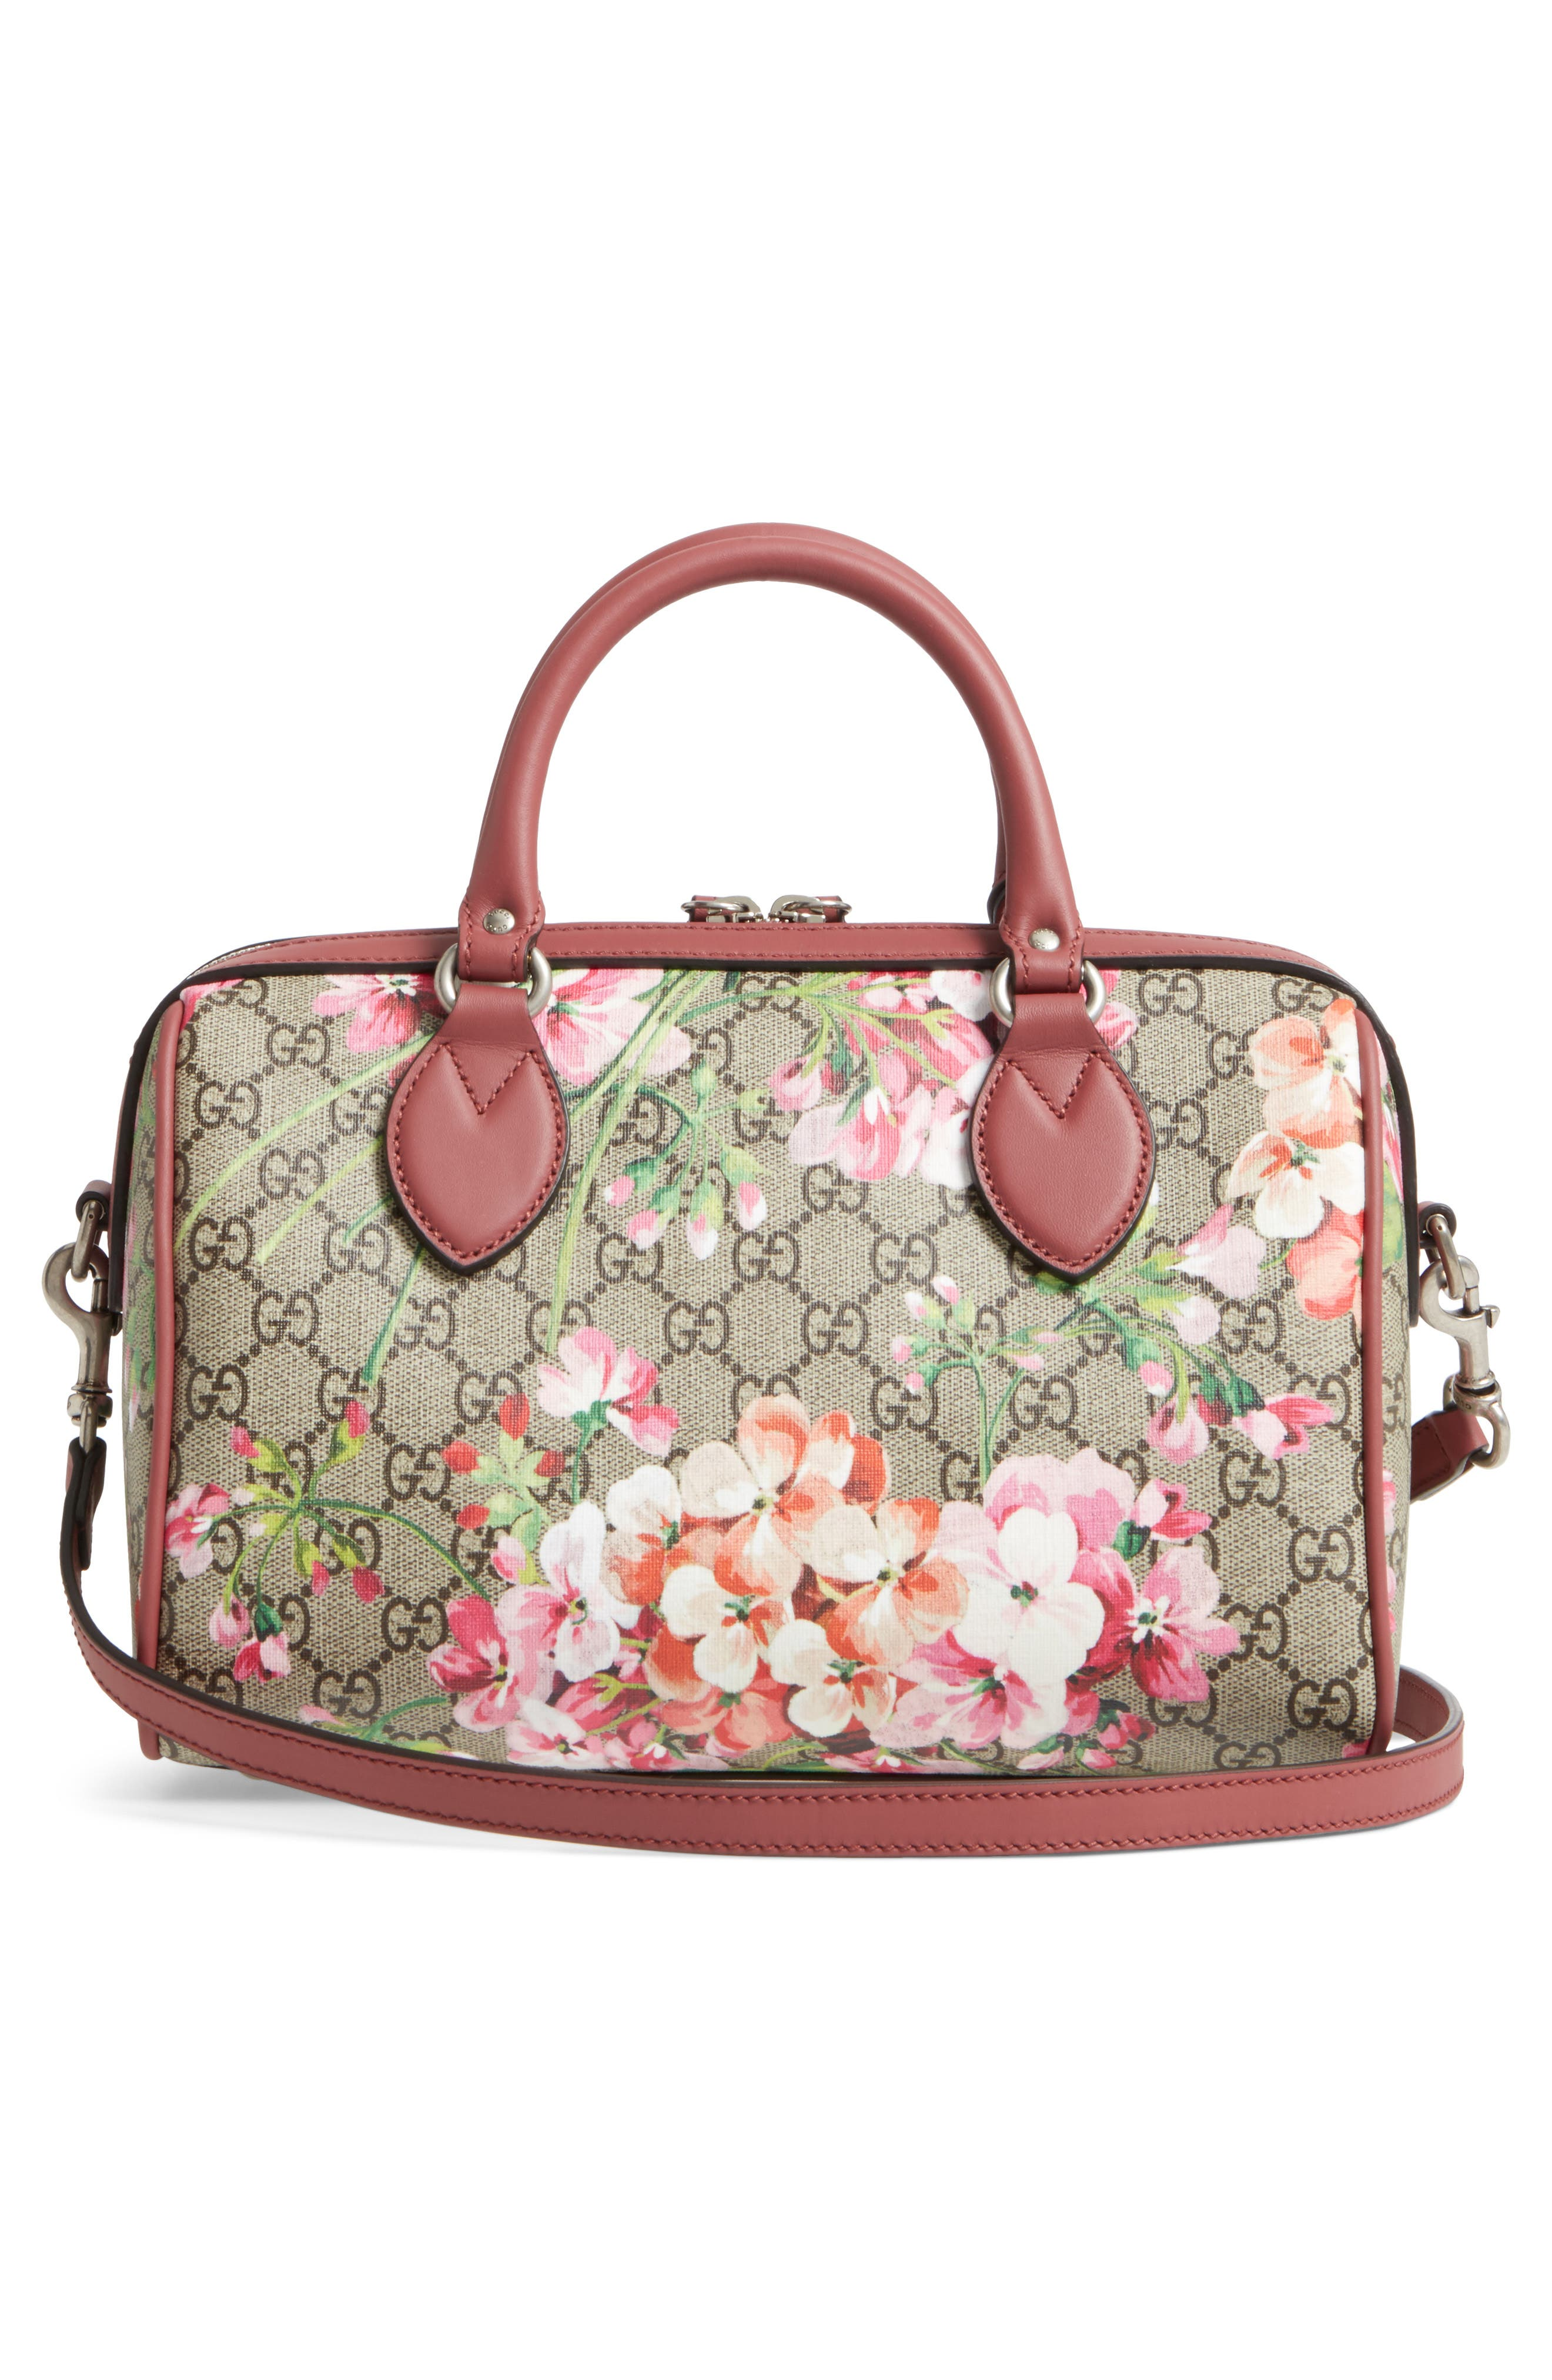 Small Blooms Top Handle GG Supreme Canvas Bag,                             Alternate thumbnail 3, color,                             Multi/Dry Rose